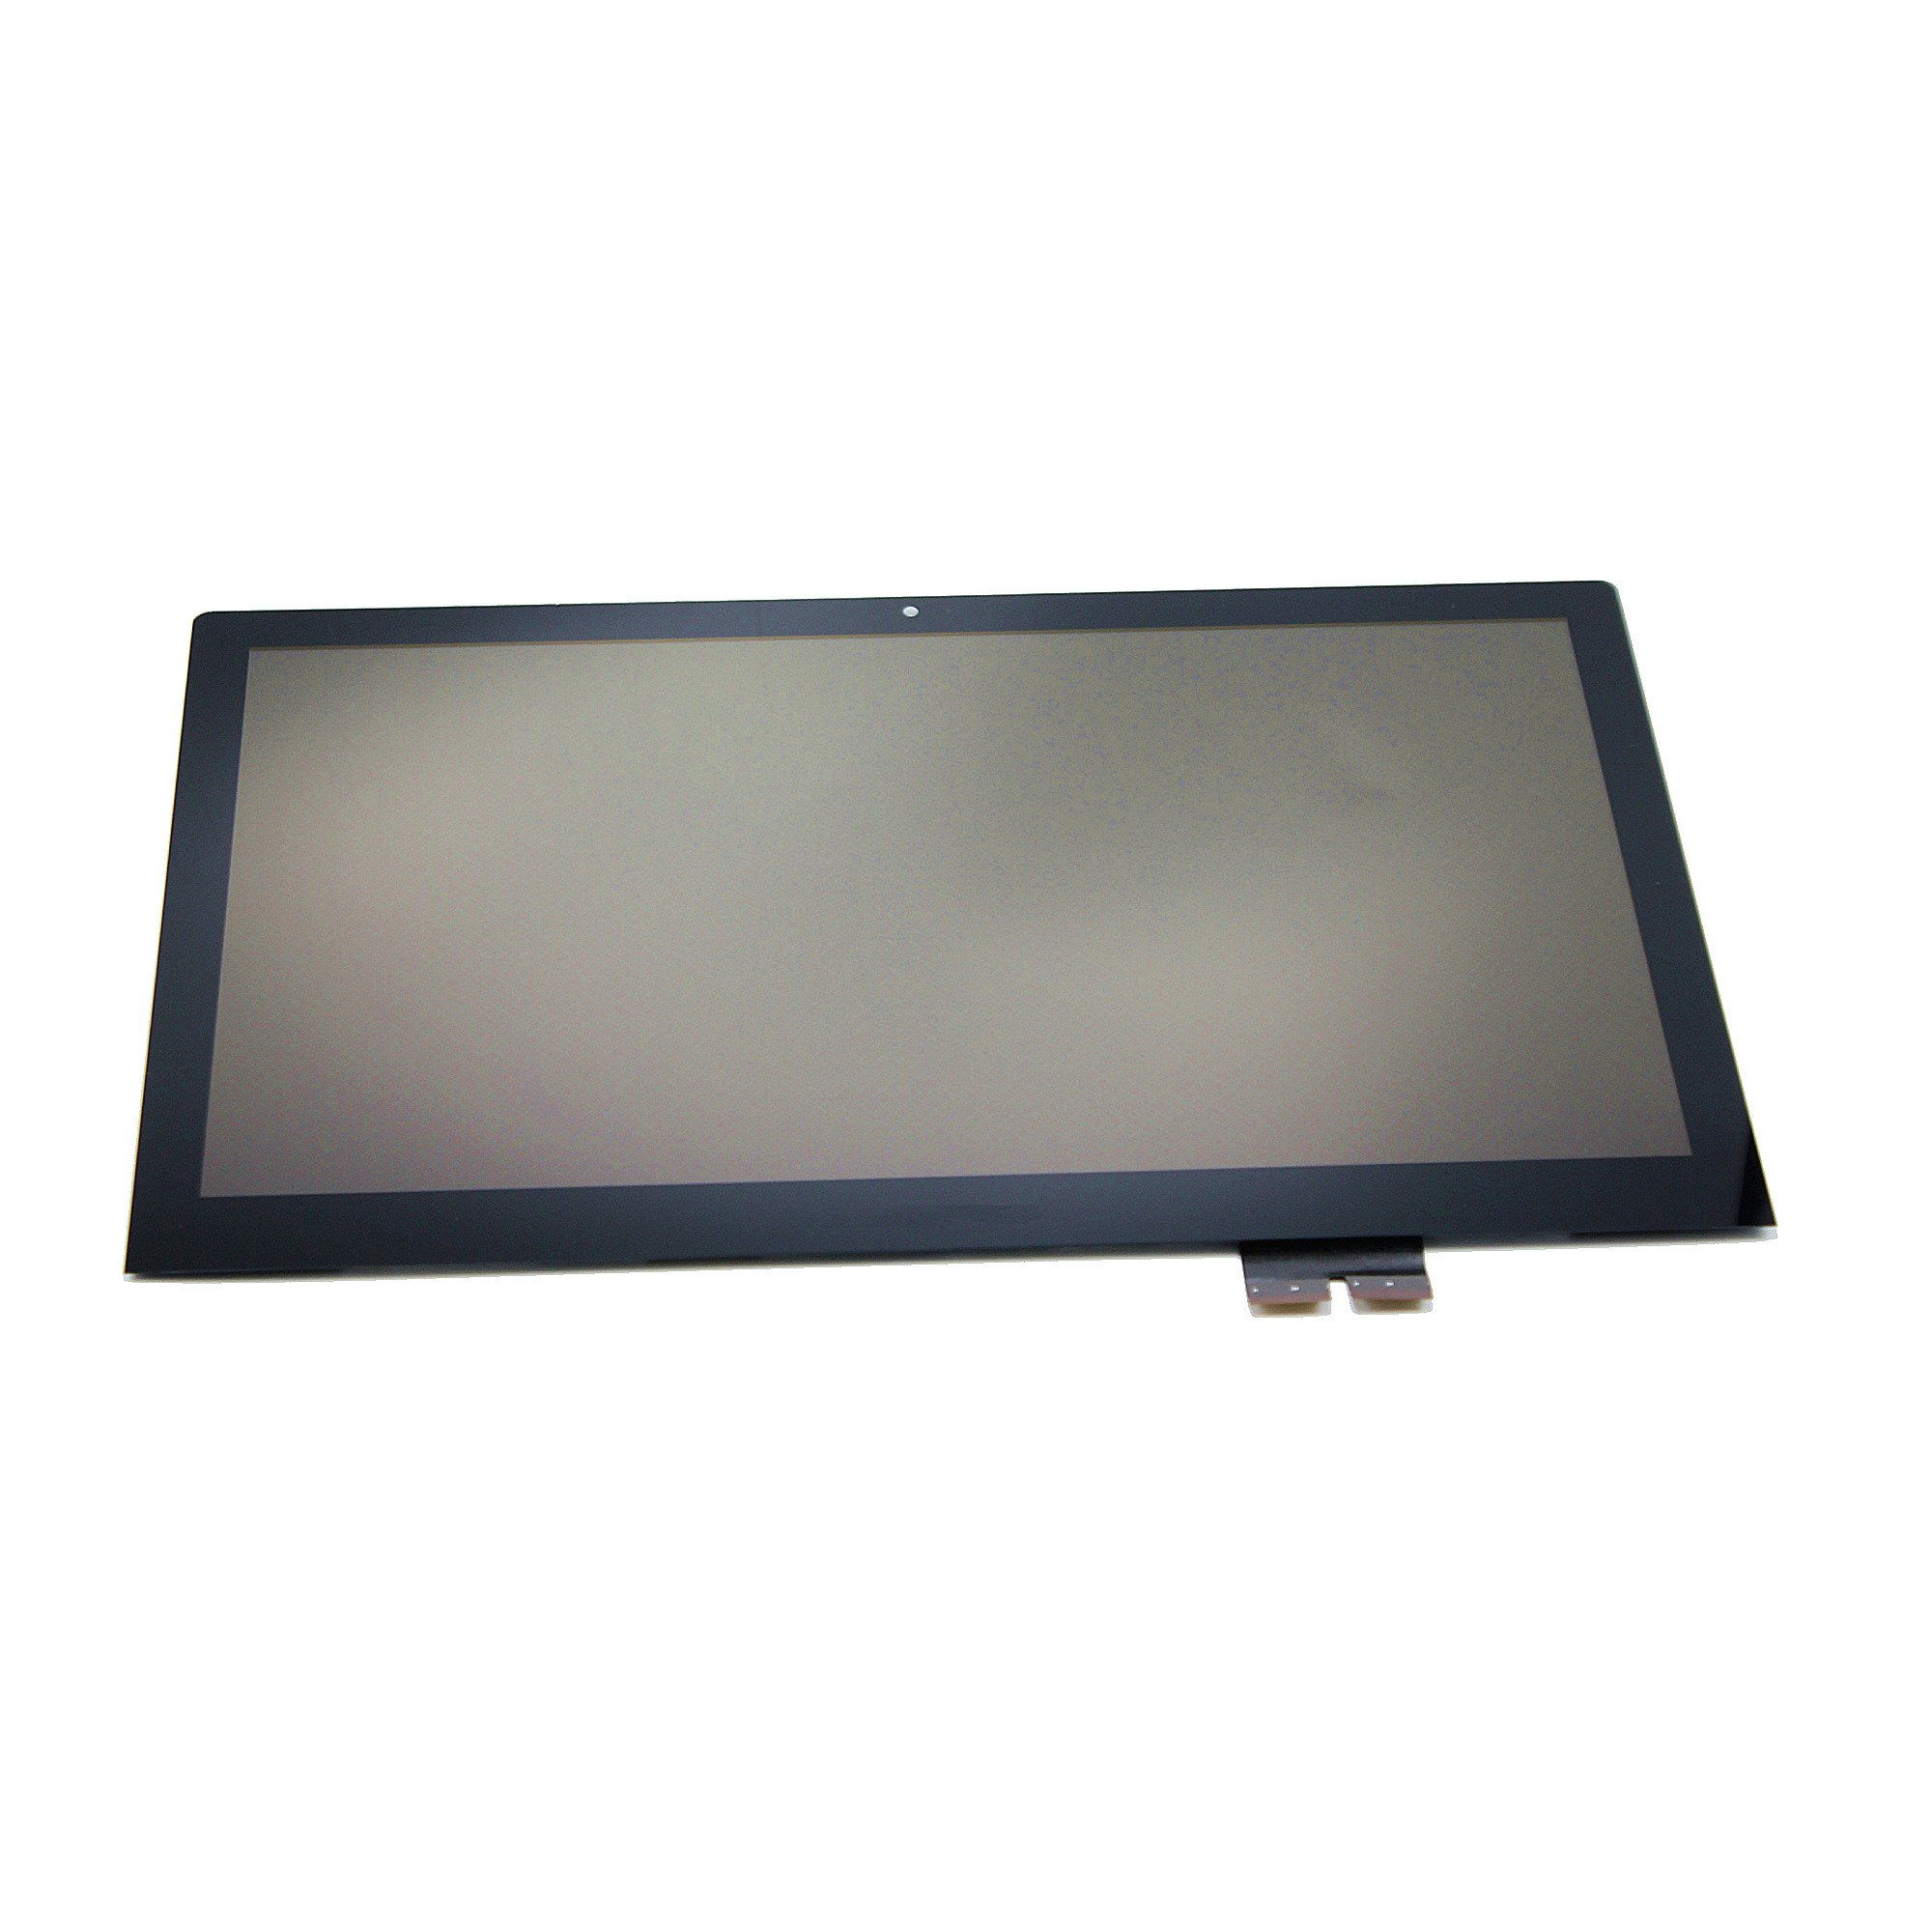 LCDOLED 15.6 inch FullHD 1080P LED LCD Display Touch Screen Digitizer Assembly For Lenovo Edge 15 80H10004US